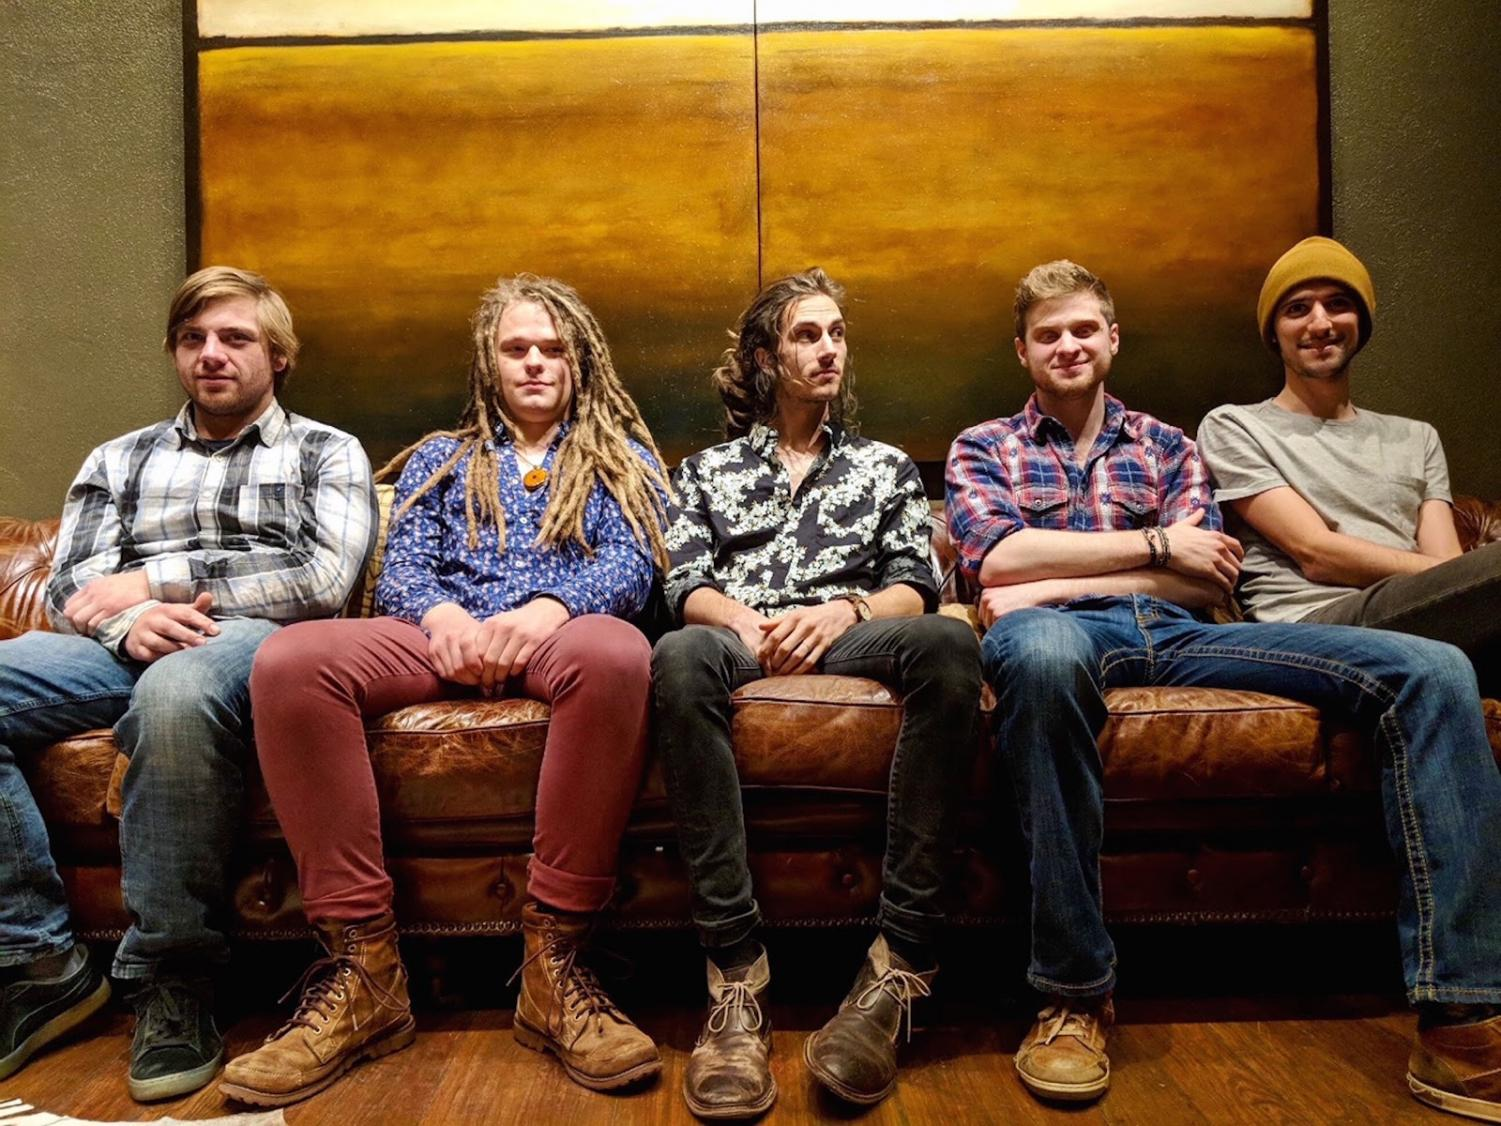 The band consists of songwriters Collin Krause and Austin Krause-Thompson, jazz percussionist John Merikoski, classical upright bassist John Williams and banjo player Travis Kowalsky.